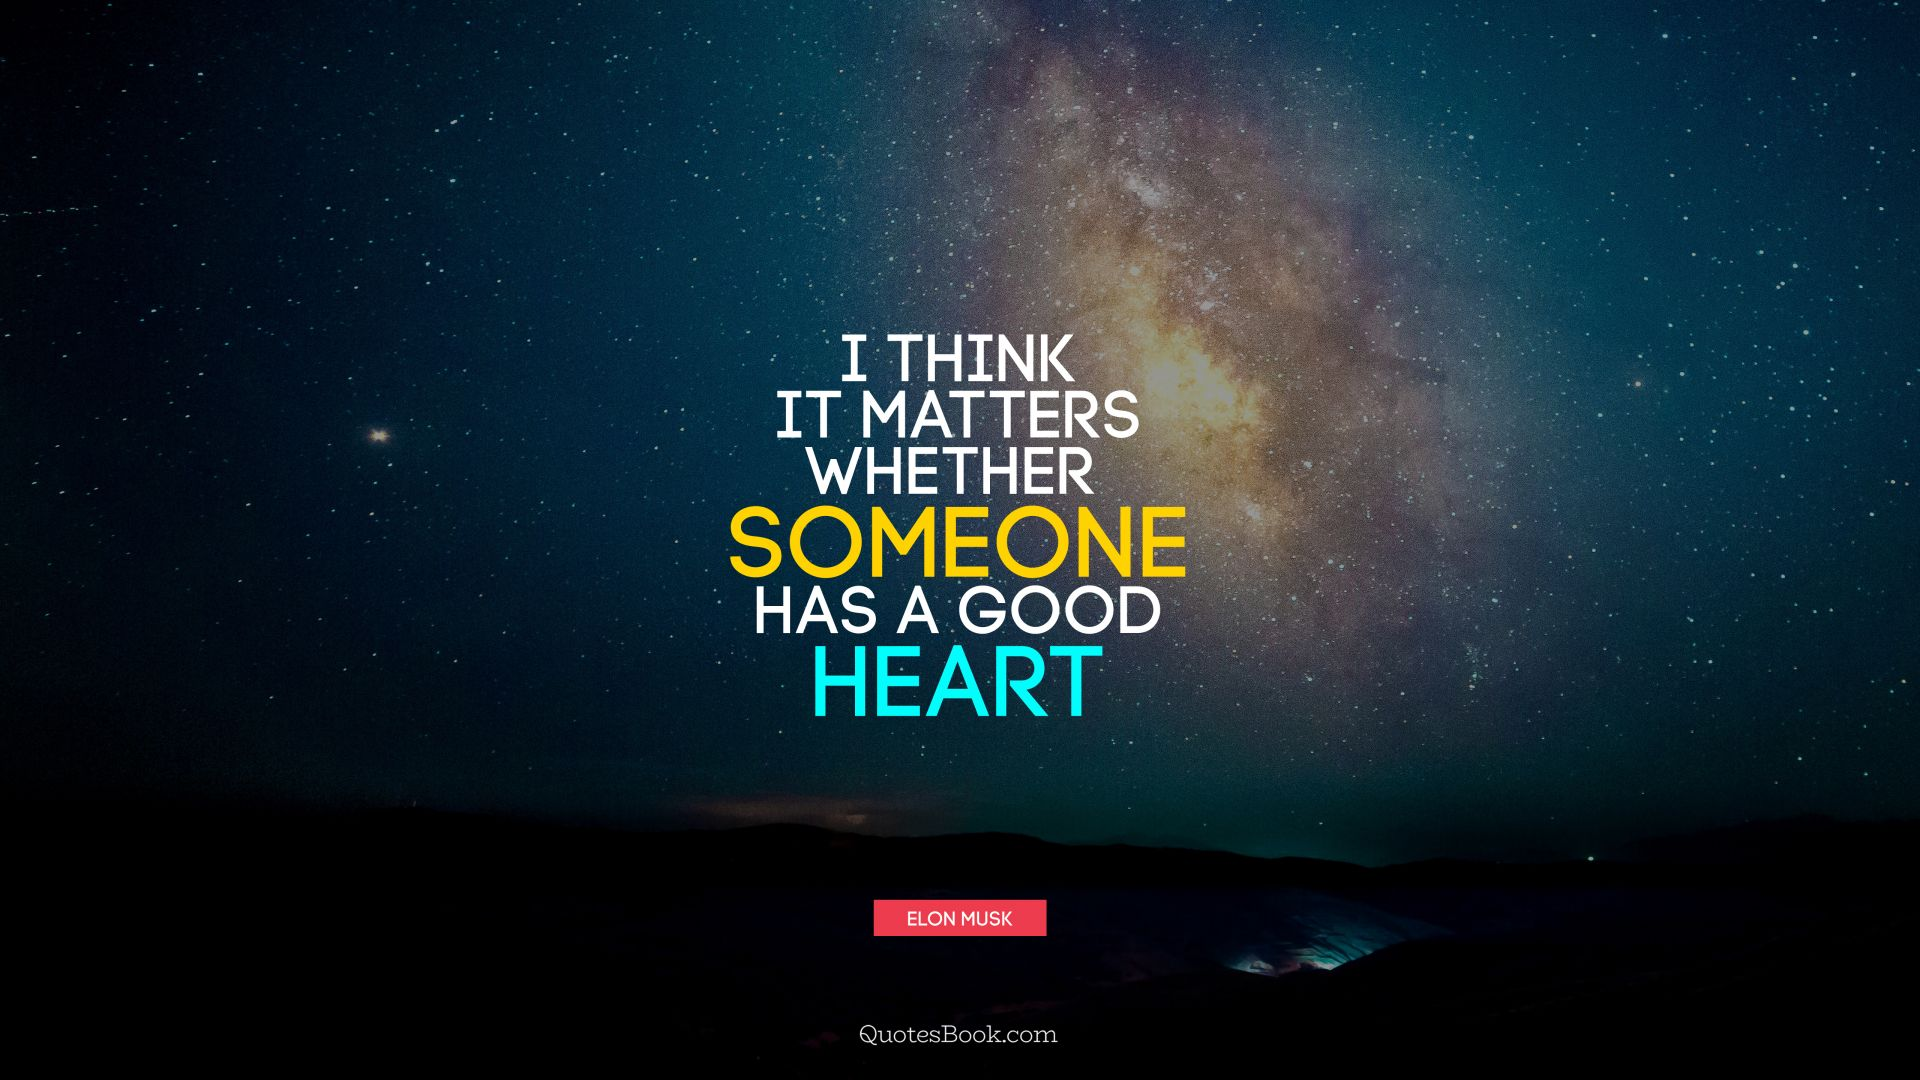 I think it matters whether someone has a good heart. - Quote by Elon Musk